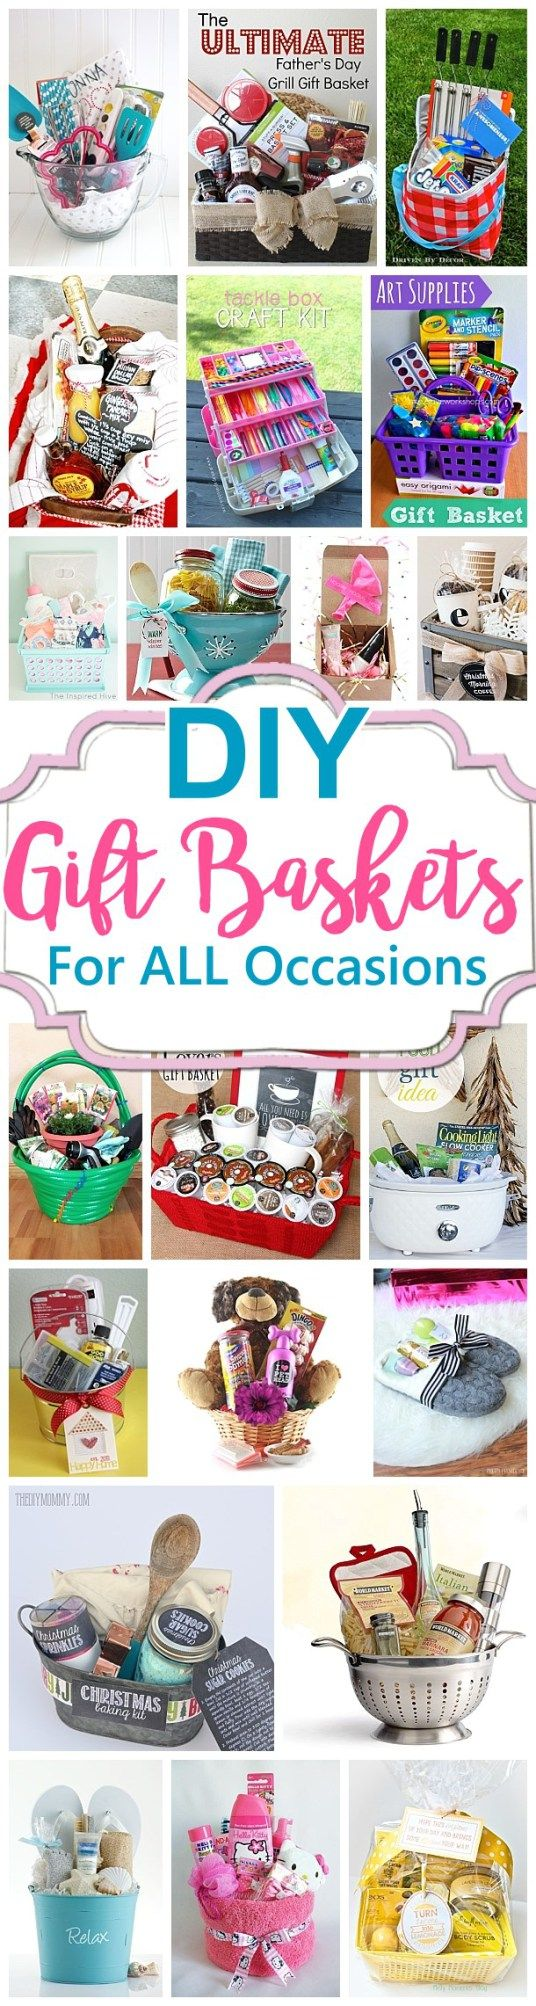 Do it yourself gift basket ideas for any and all occasions basket do it yourself gift baskets ideas for any and all occasions perfect diy gift baskets for christmas birthdays thank you gifts housewarmings baby solutioingenieria Gallery